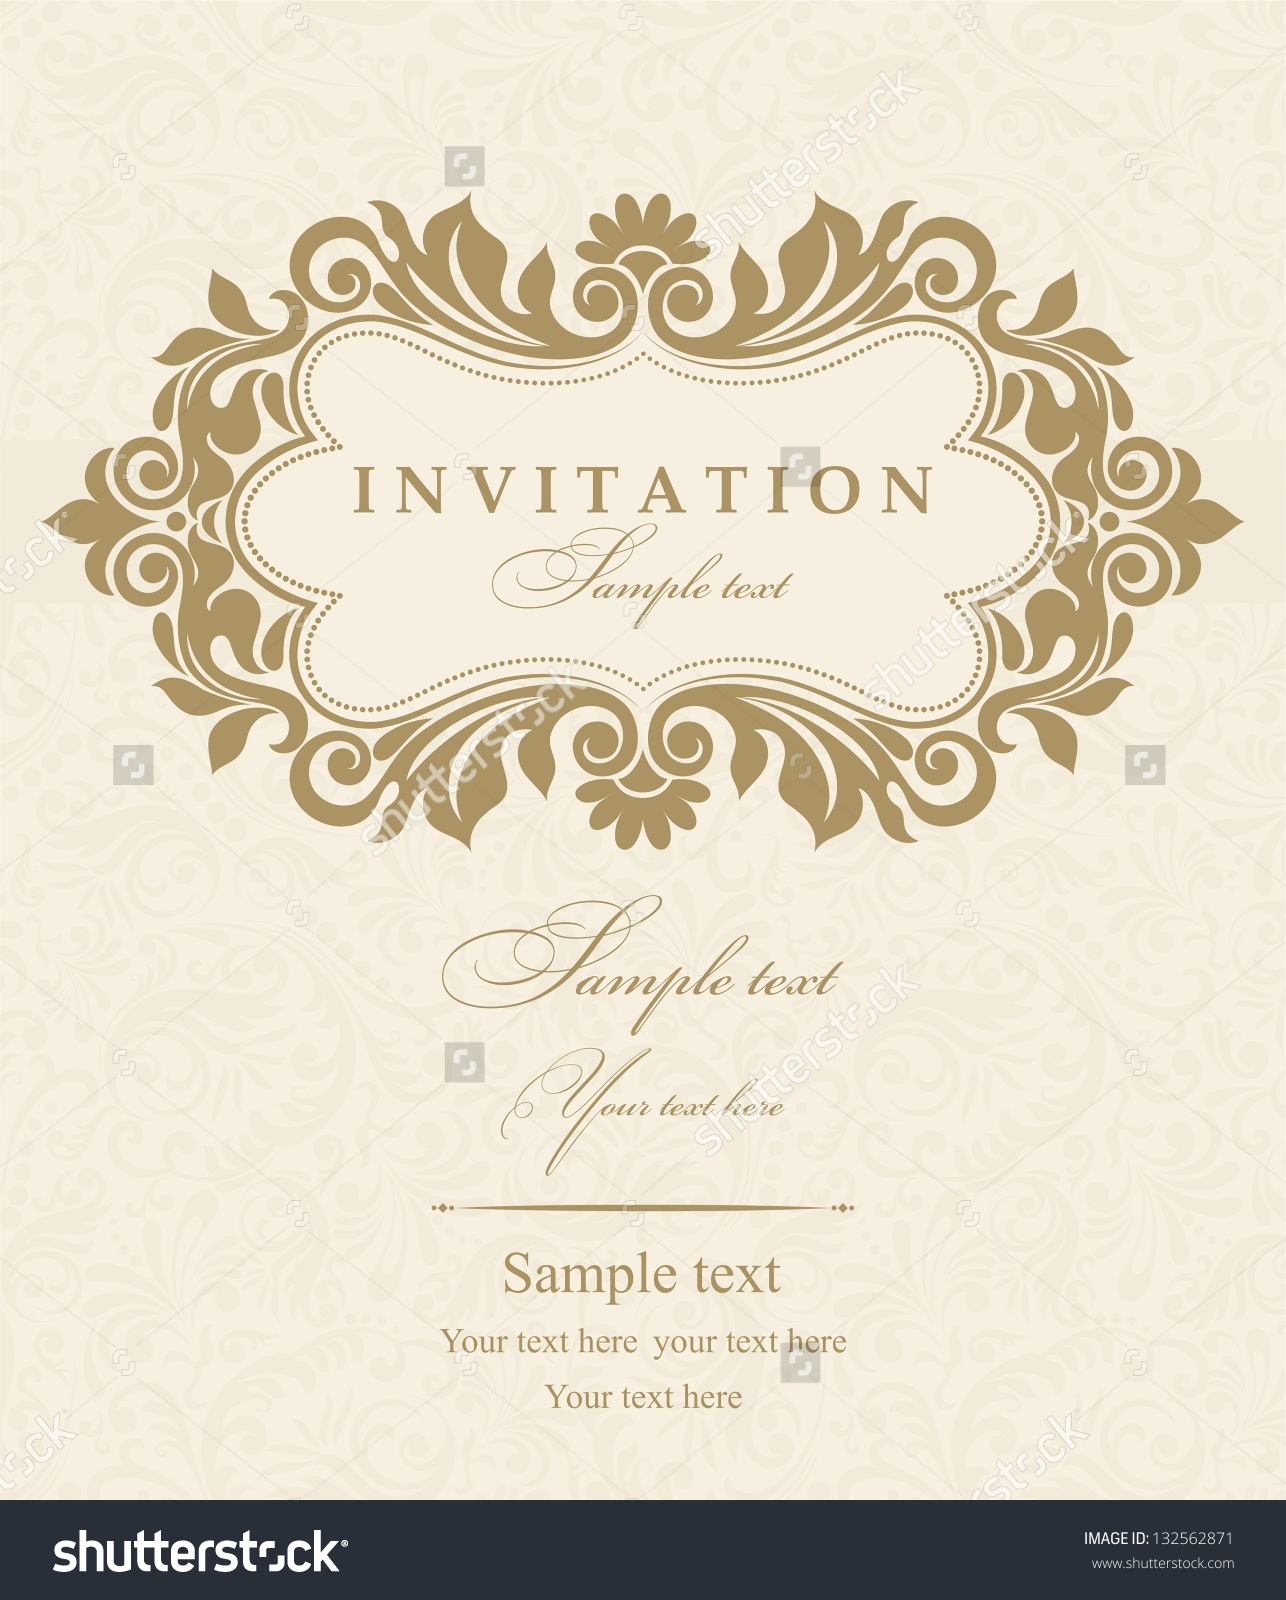 Invitation card targergolden dragon invitation cards fotolip com rich image and wallpaper stopboris